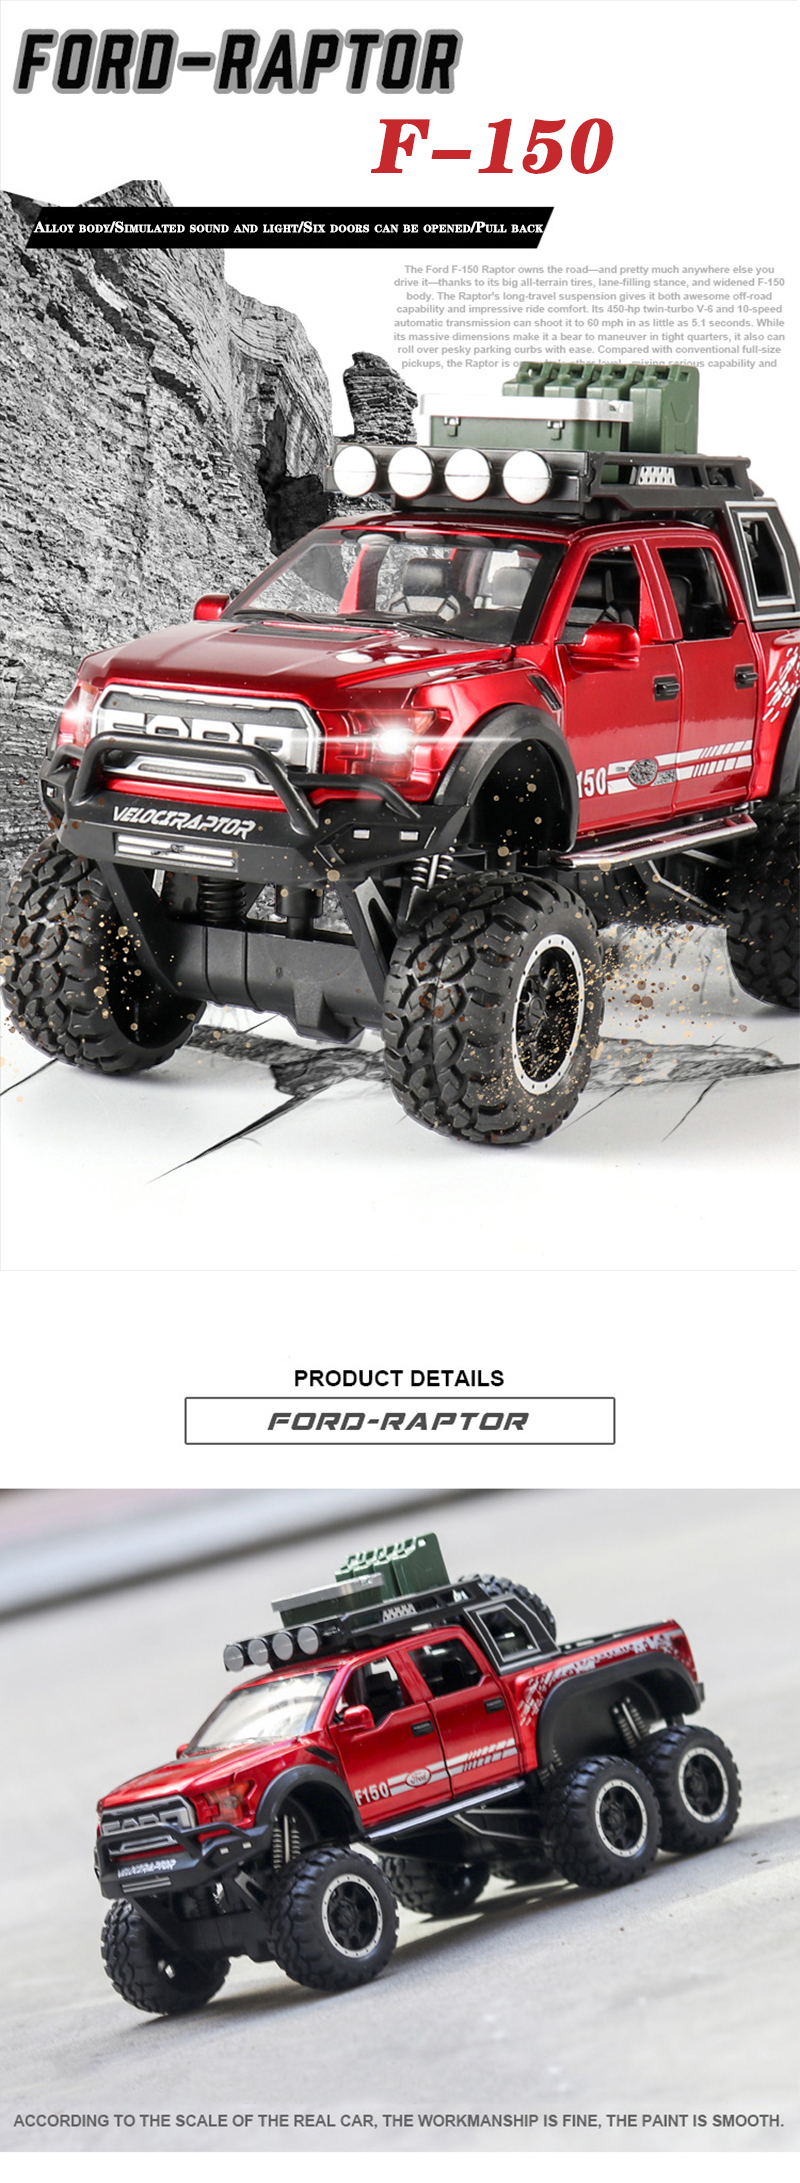 Ford F150 Raptor Pickup Truck Model Car with Sound and Lights 7